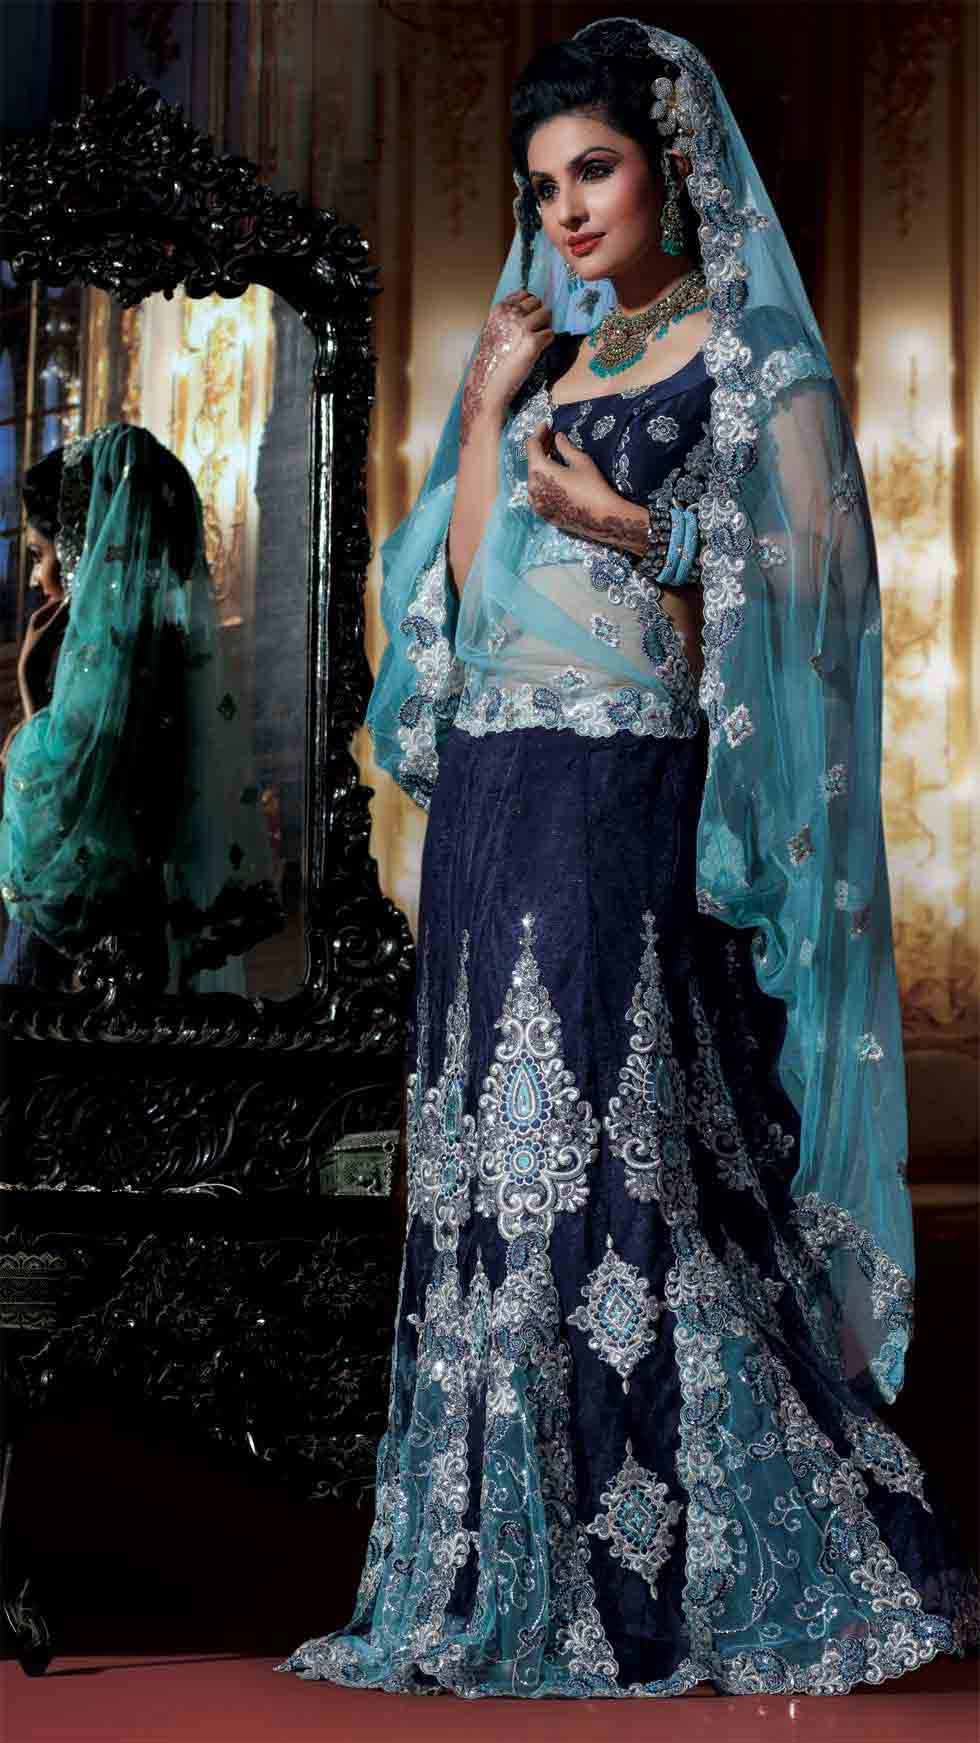 5 Best Bridal Lehenga Shops in Chandni Chowk Delhi Prices